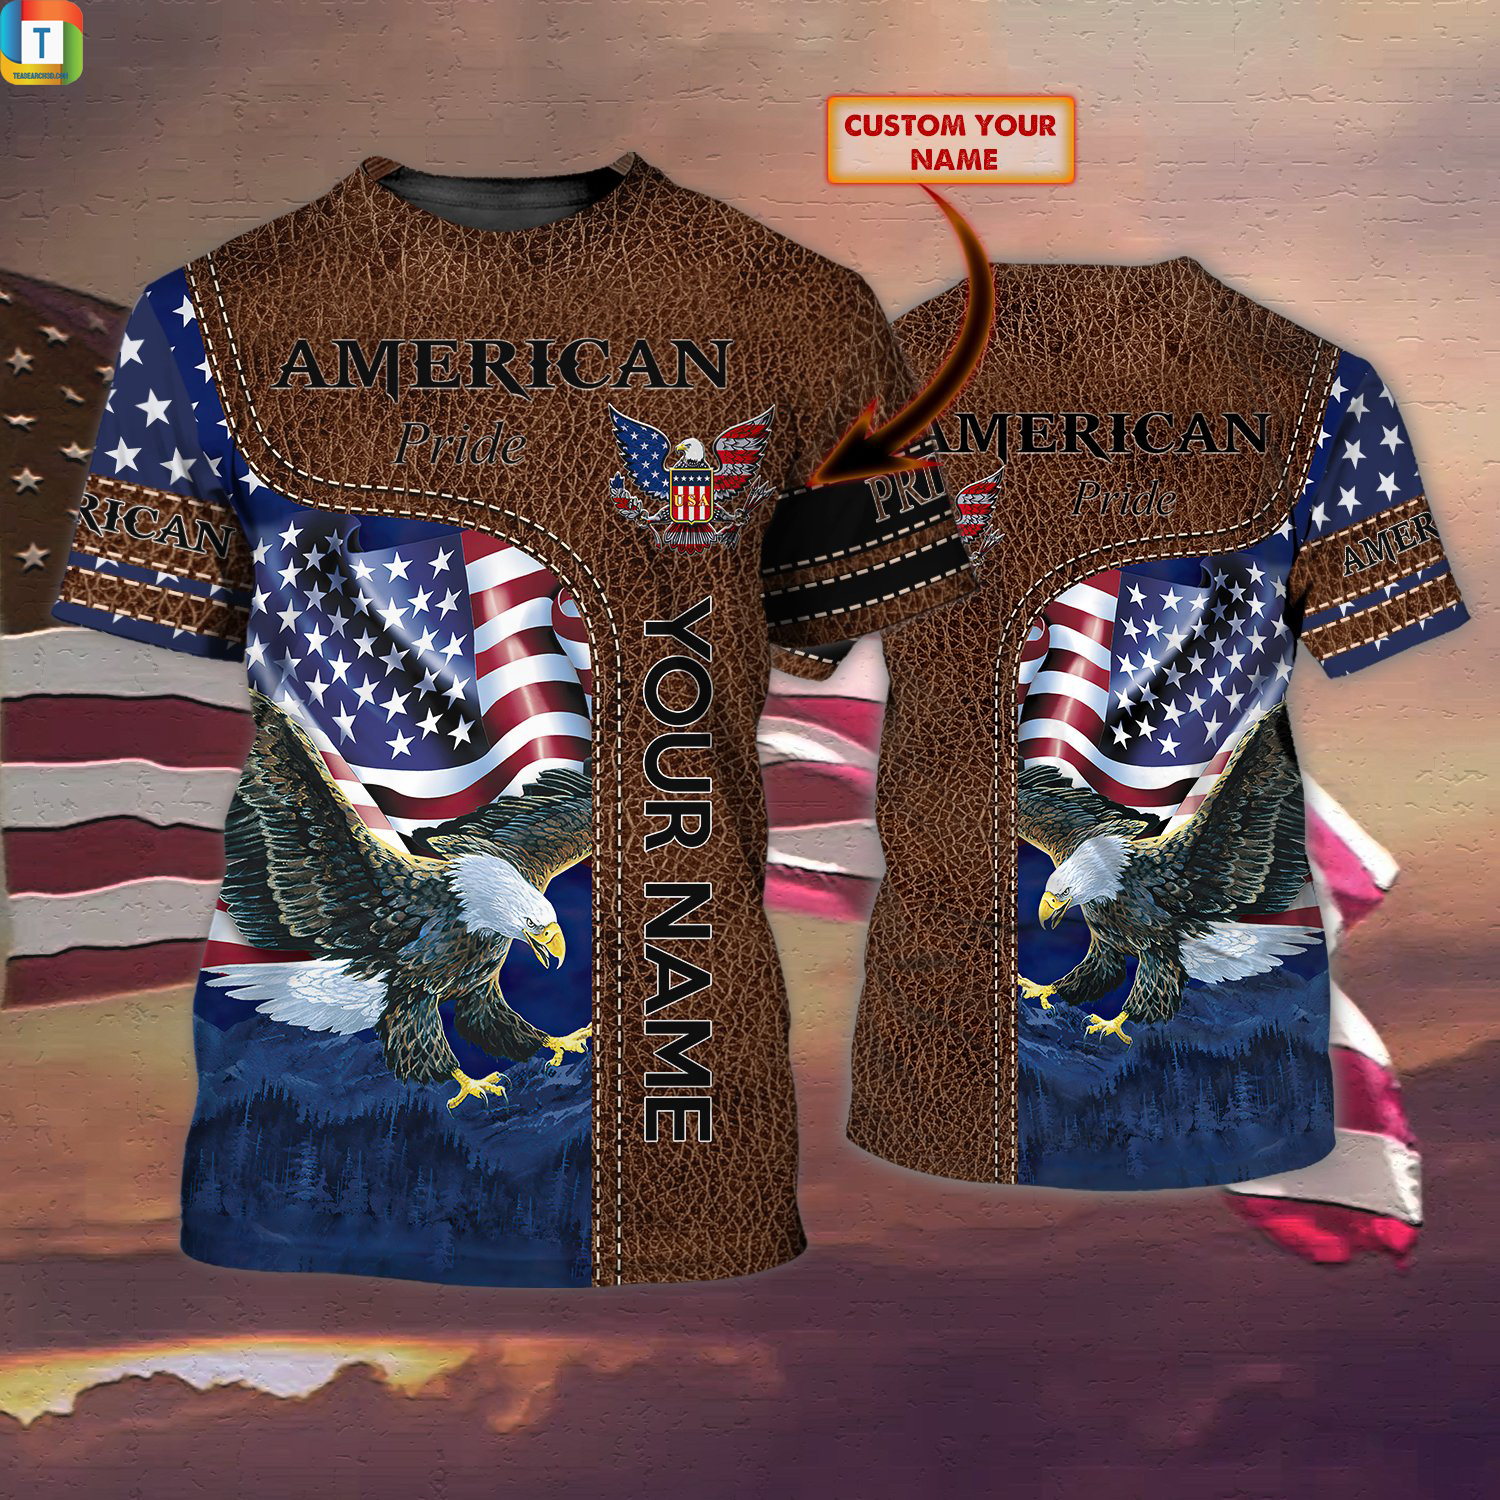 Personalized custom name american pride 3d all over printed shirt